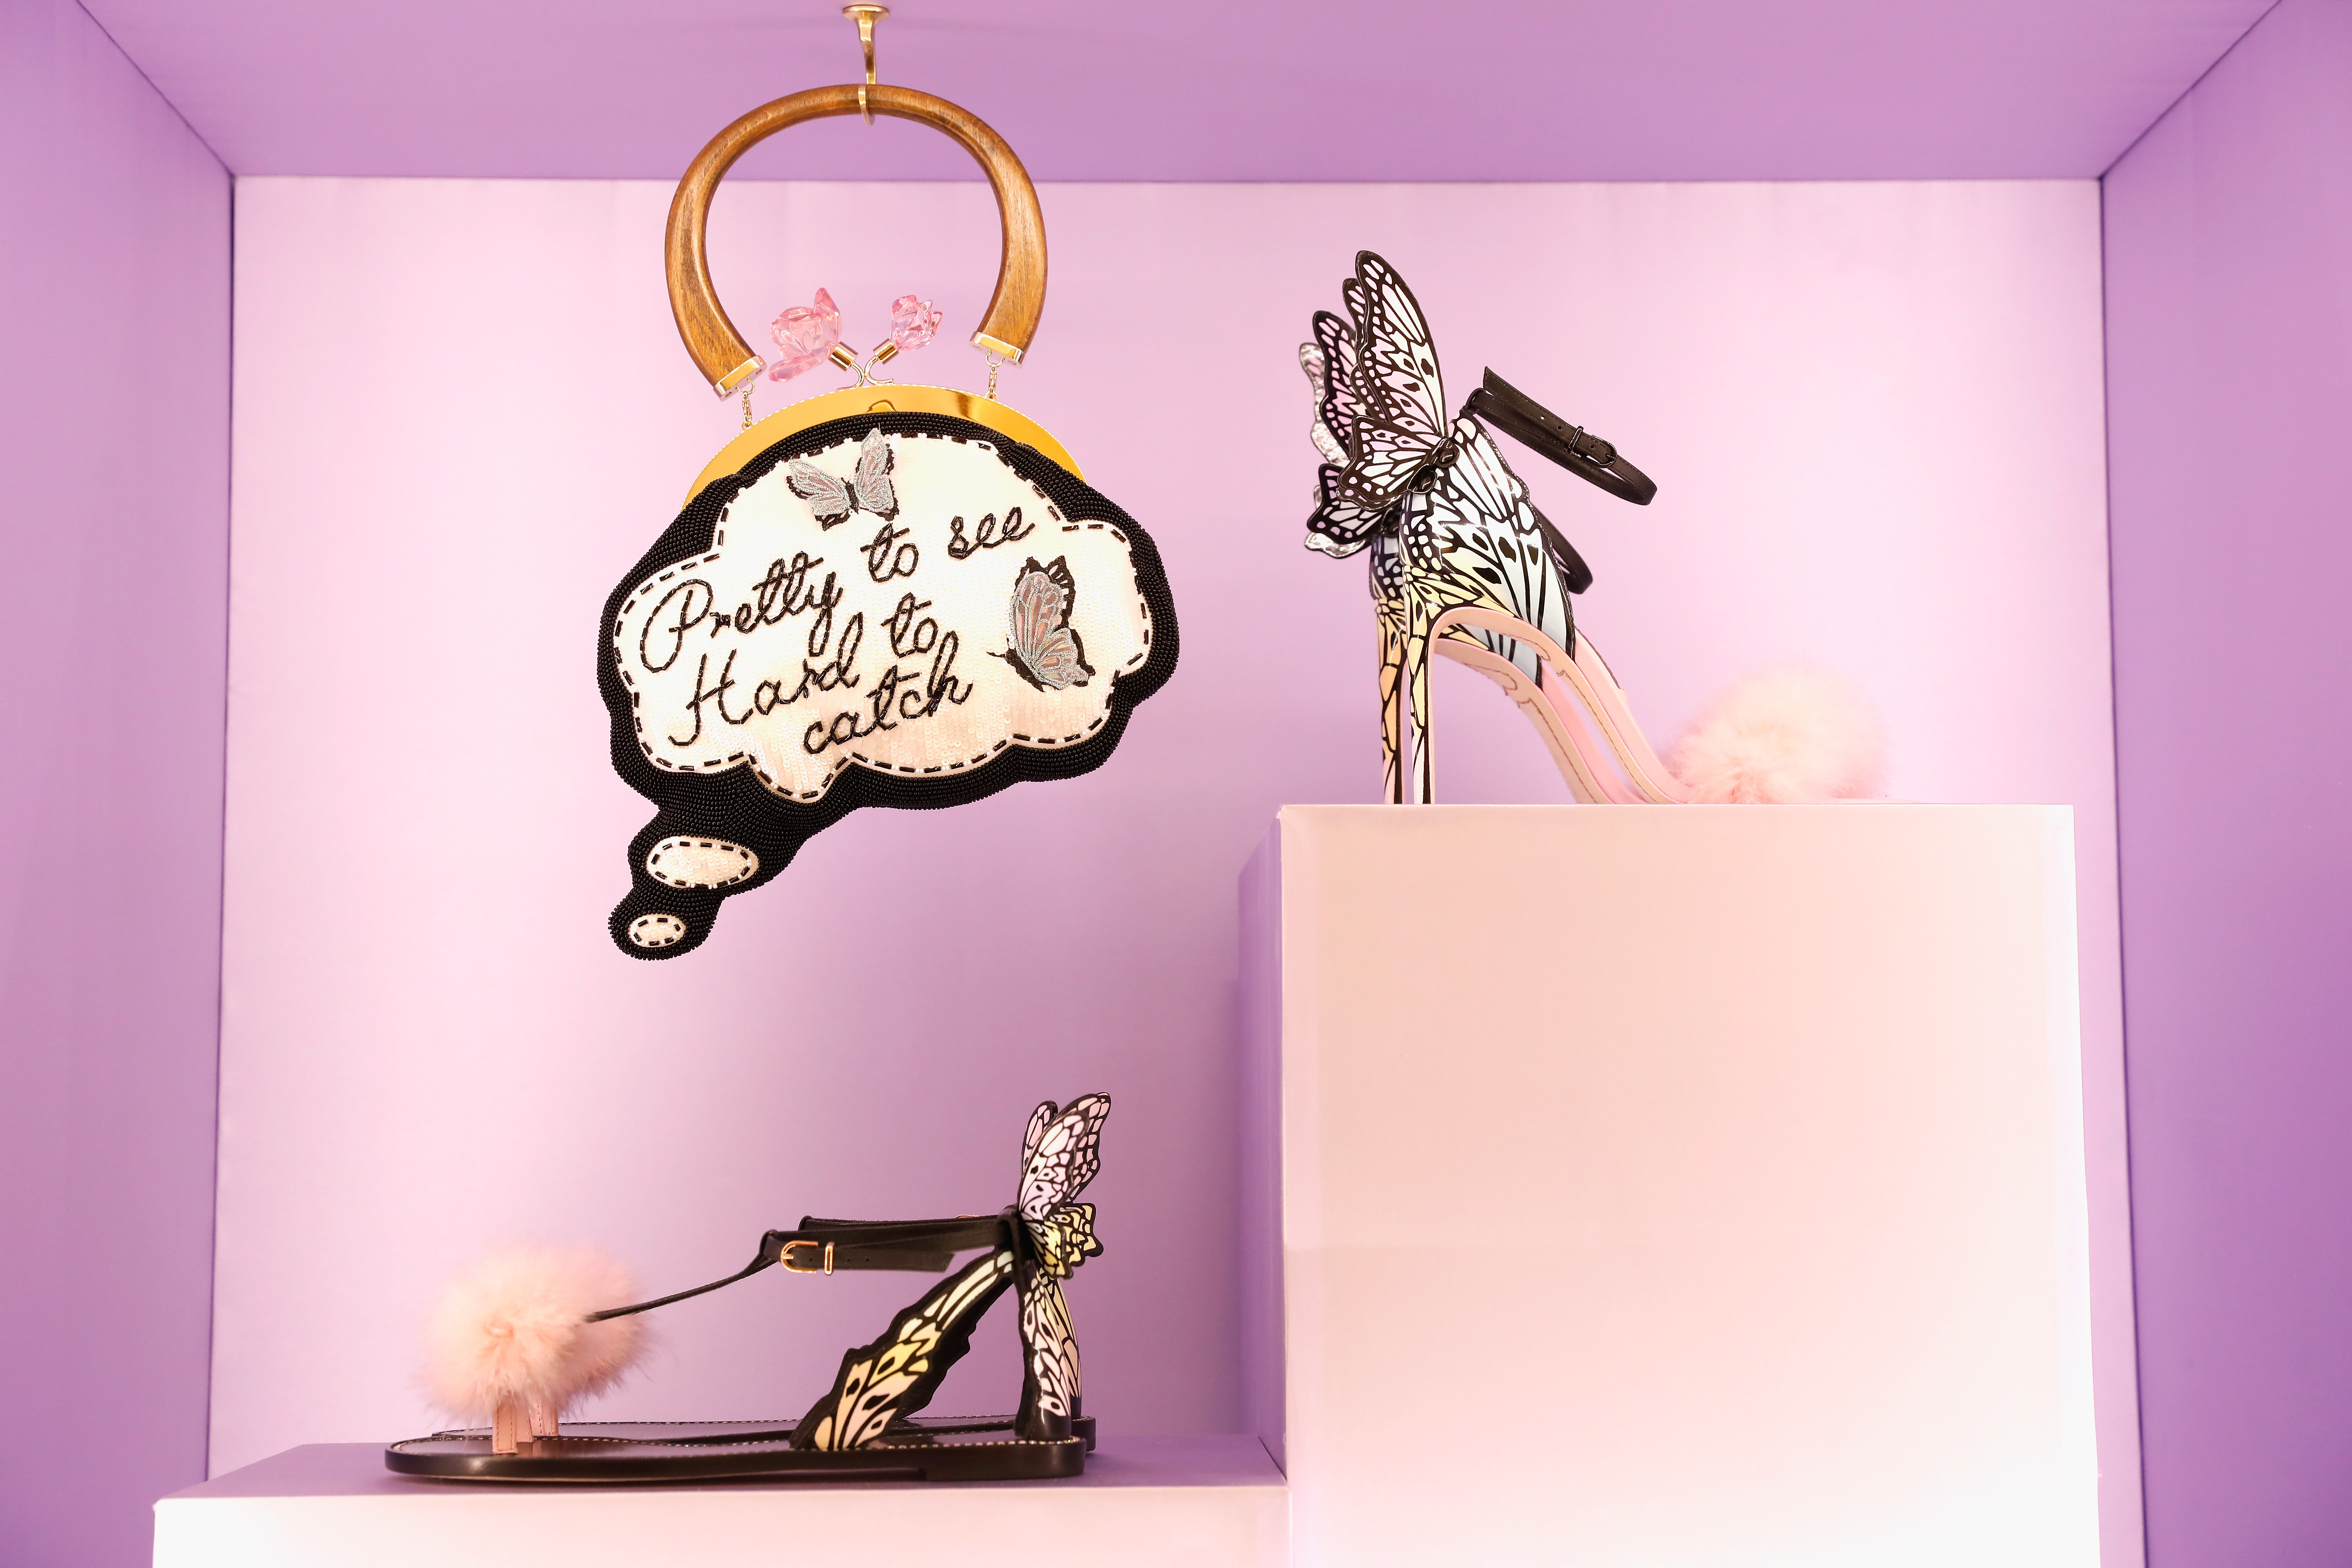 LONDON, ENGLAND - SEPTEMBER 18:  Fashion accessories on display at the Sophia Webster SS18 Presentation at The Portico Rooms, Somerset House on September 18, 2017 in London, England.  (Photo by Tristan Fewings/Getty Images)